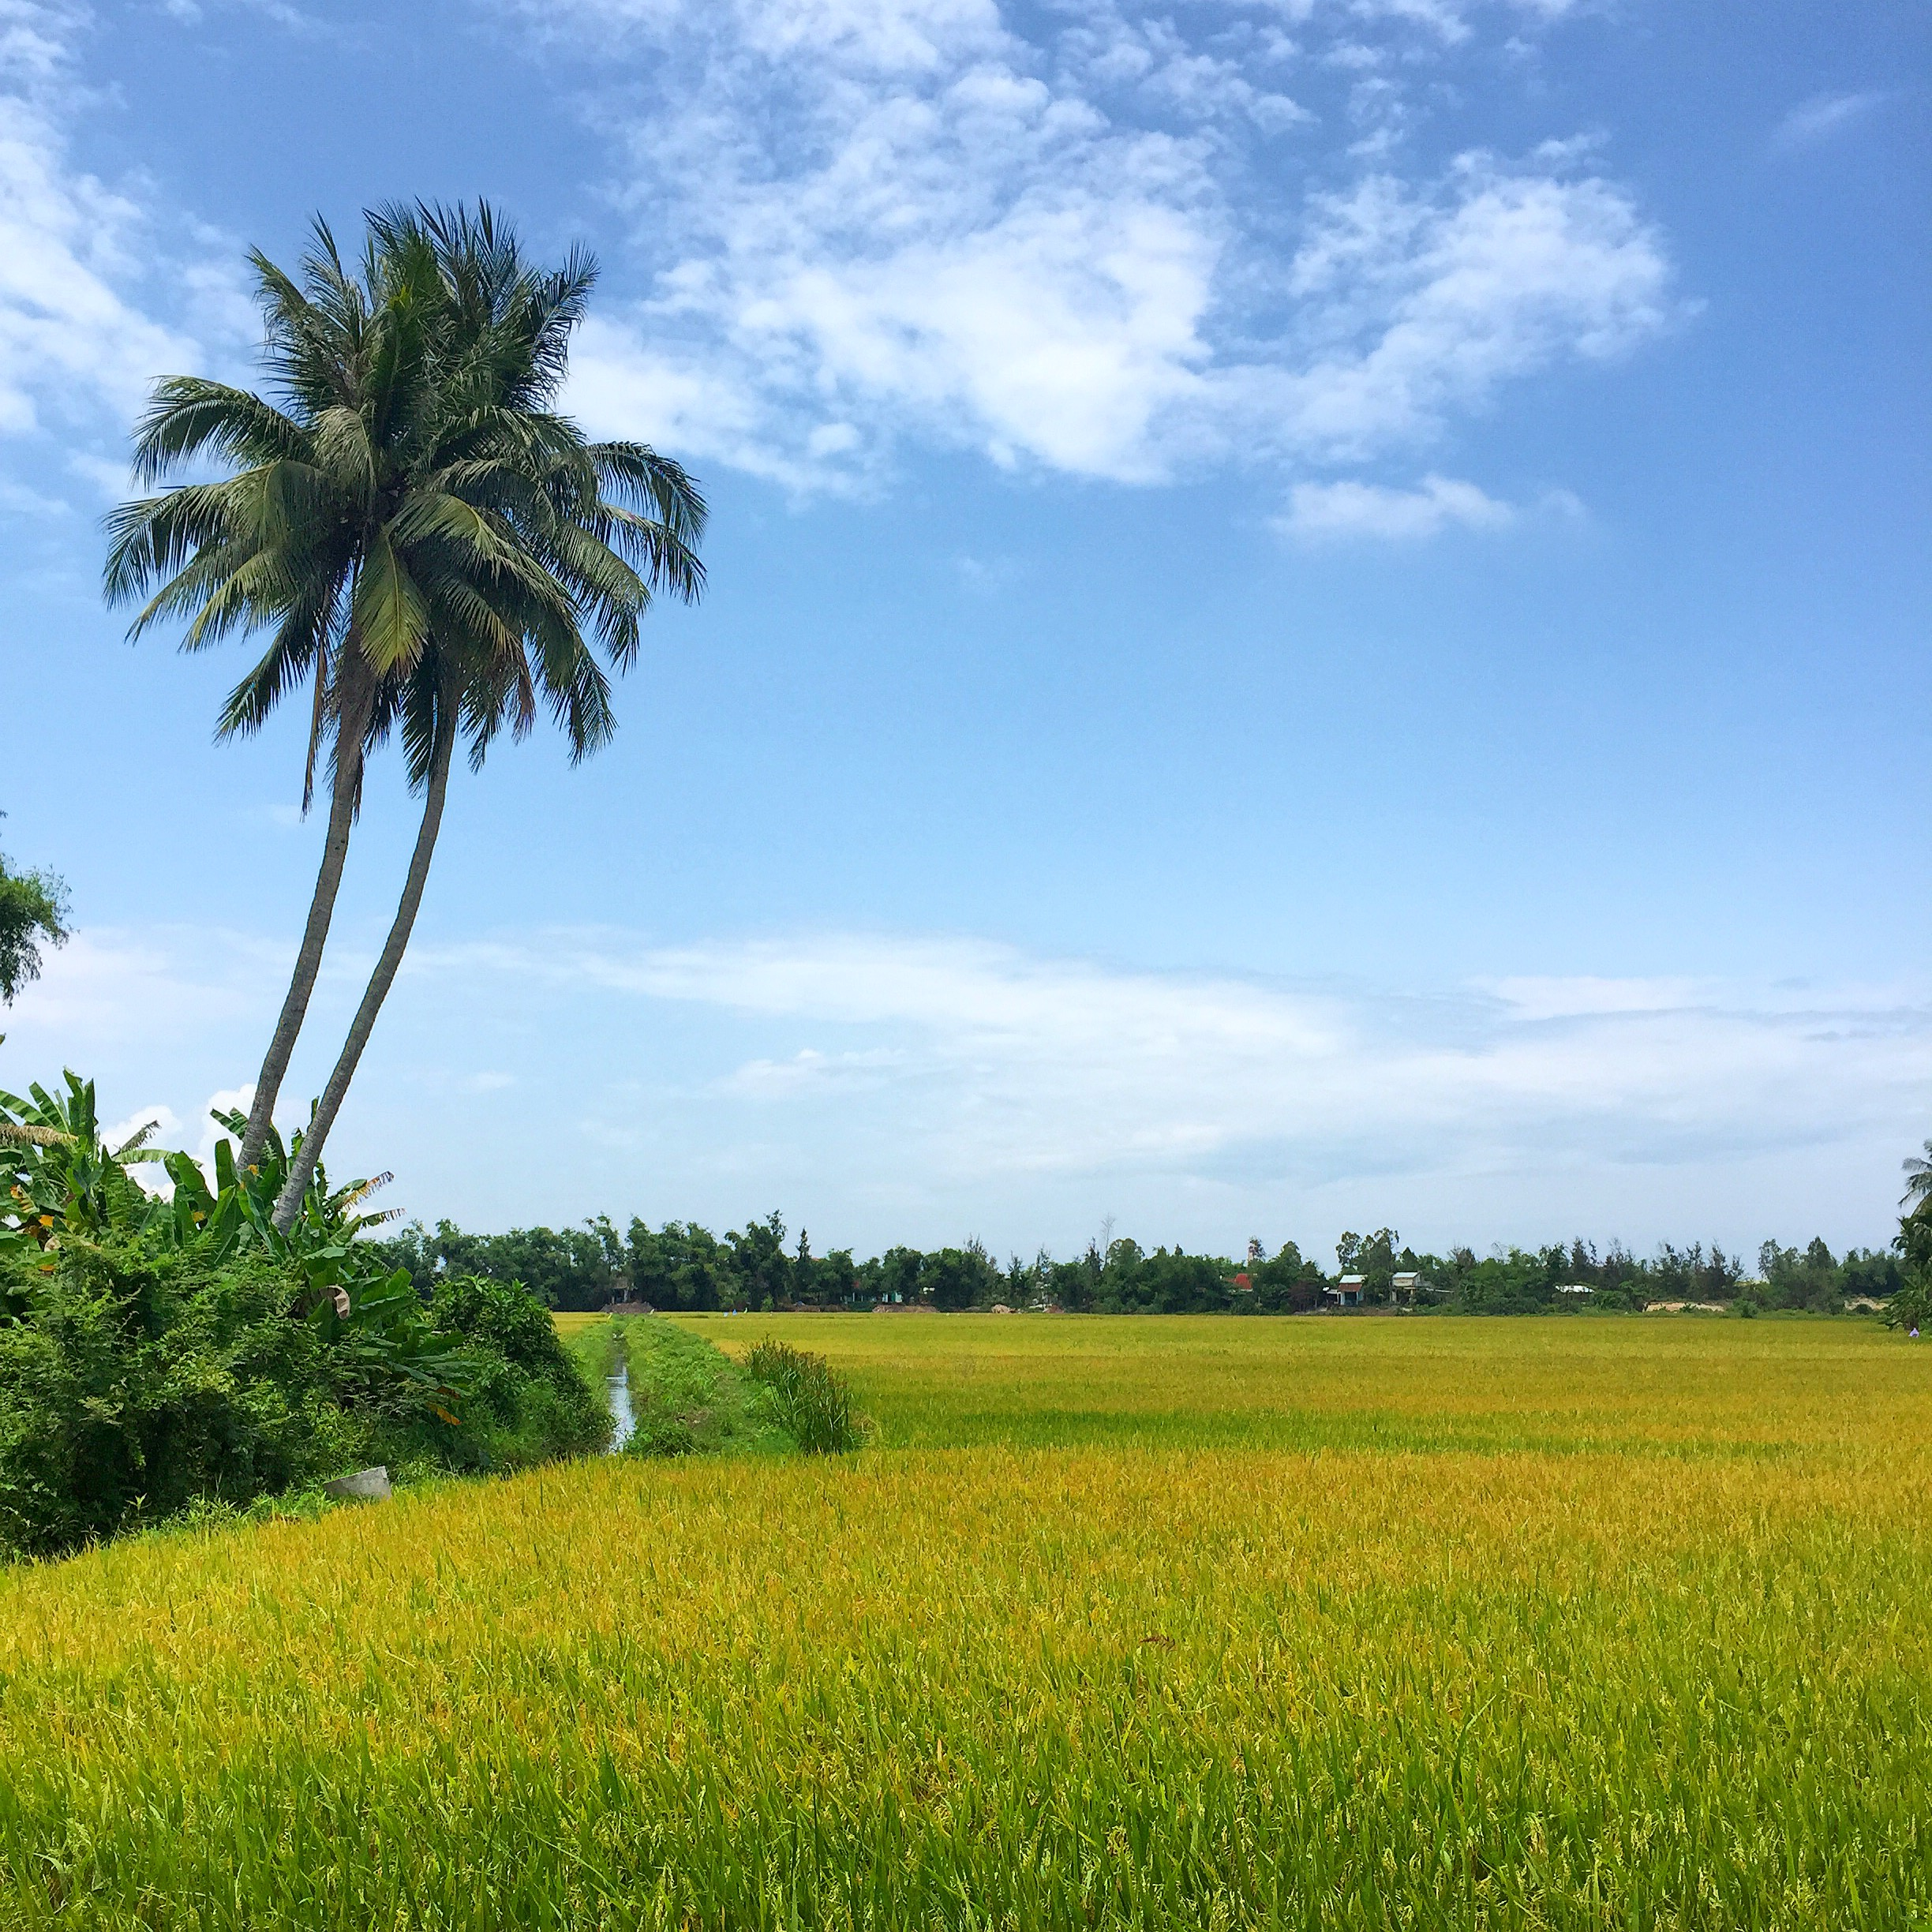 Hoi An, Vietnam. Countryside before the Rice harvest.